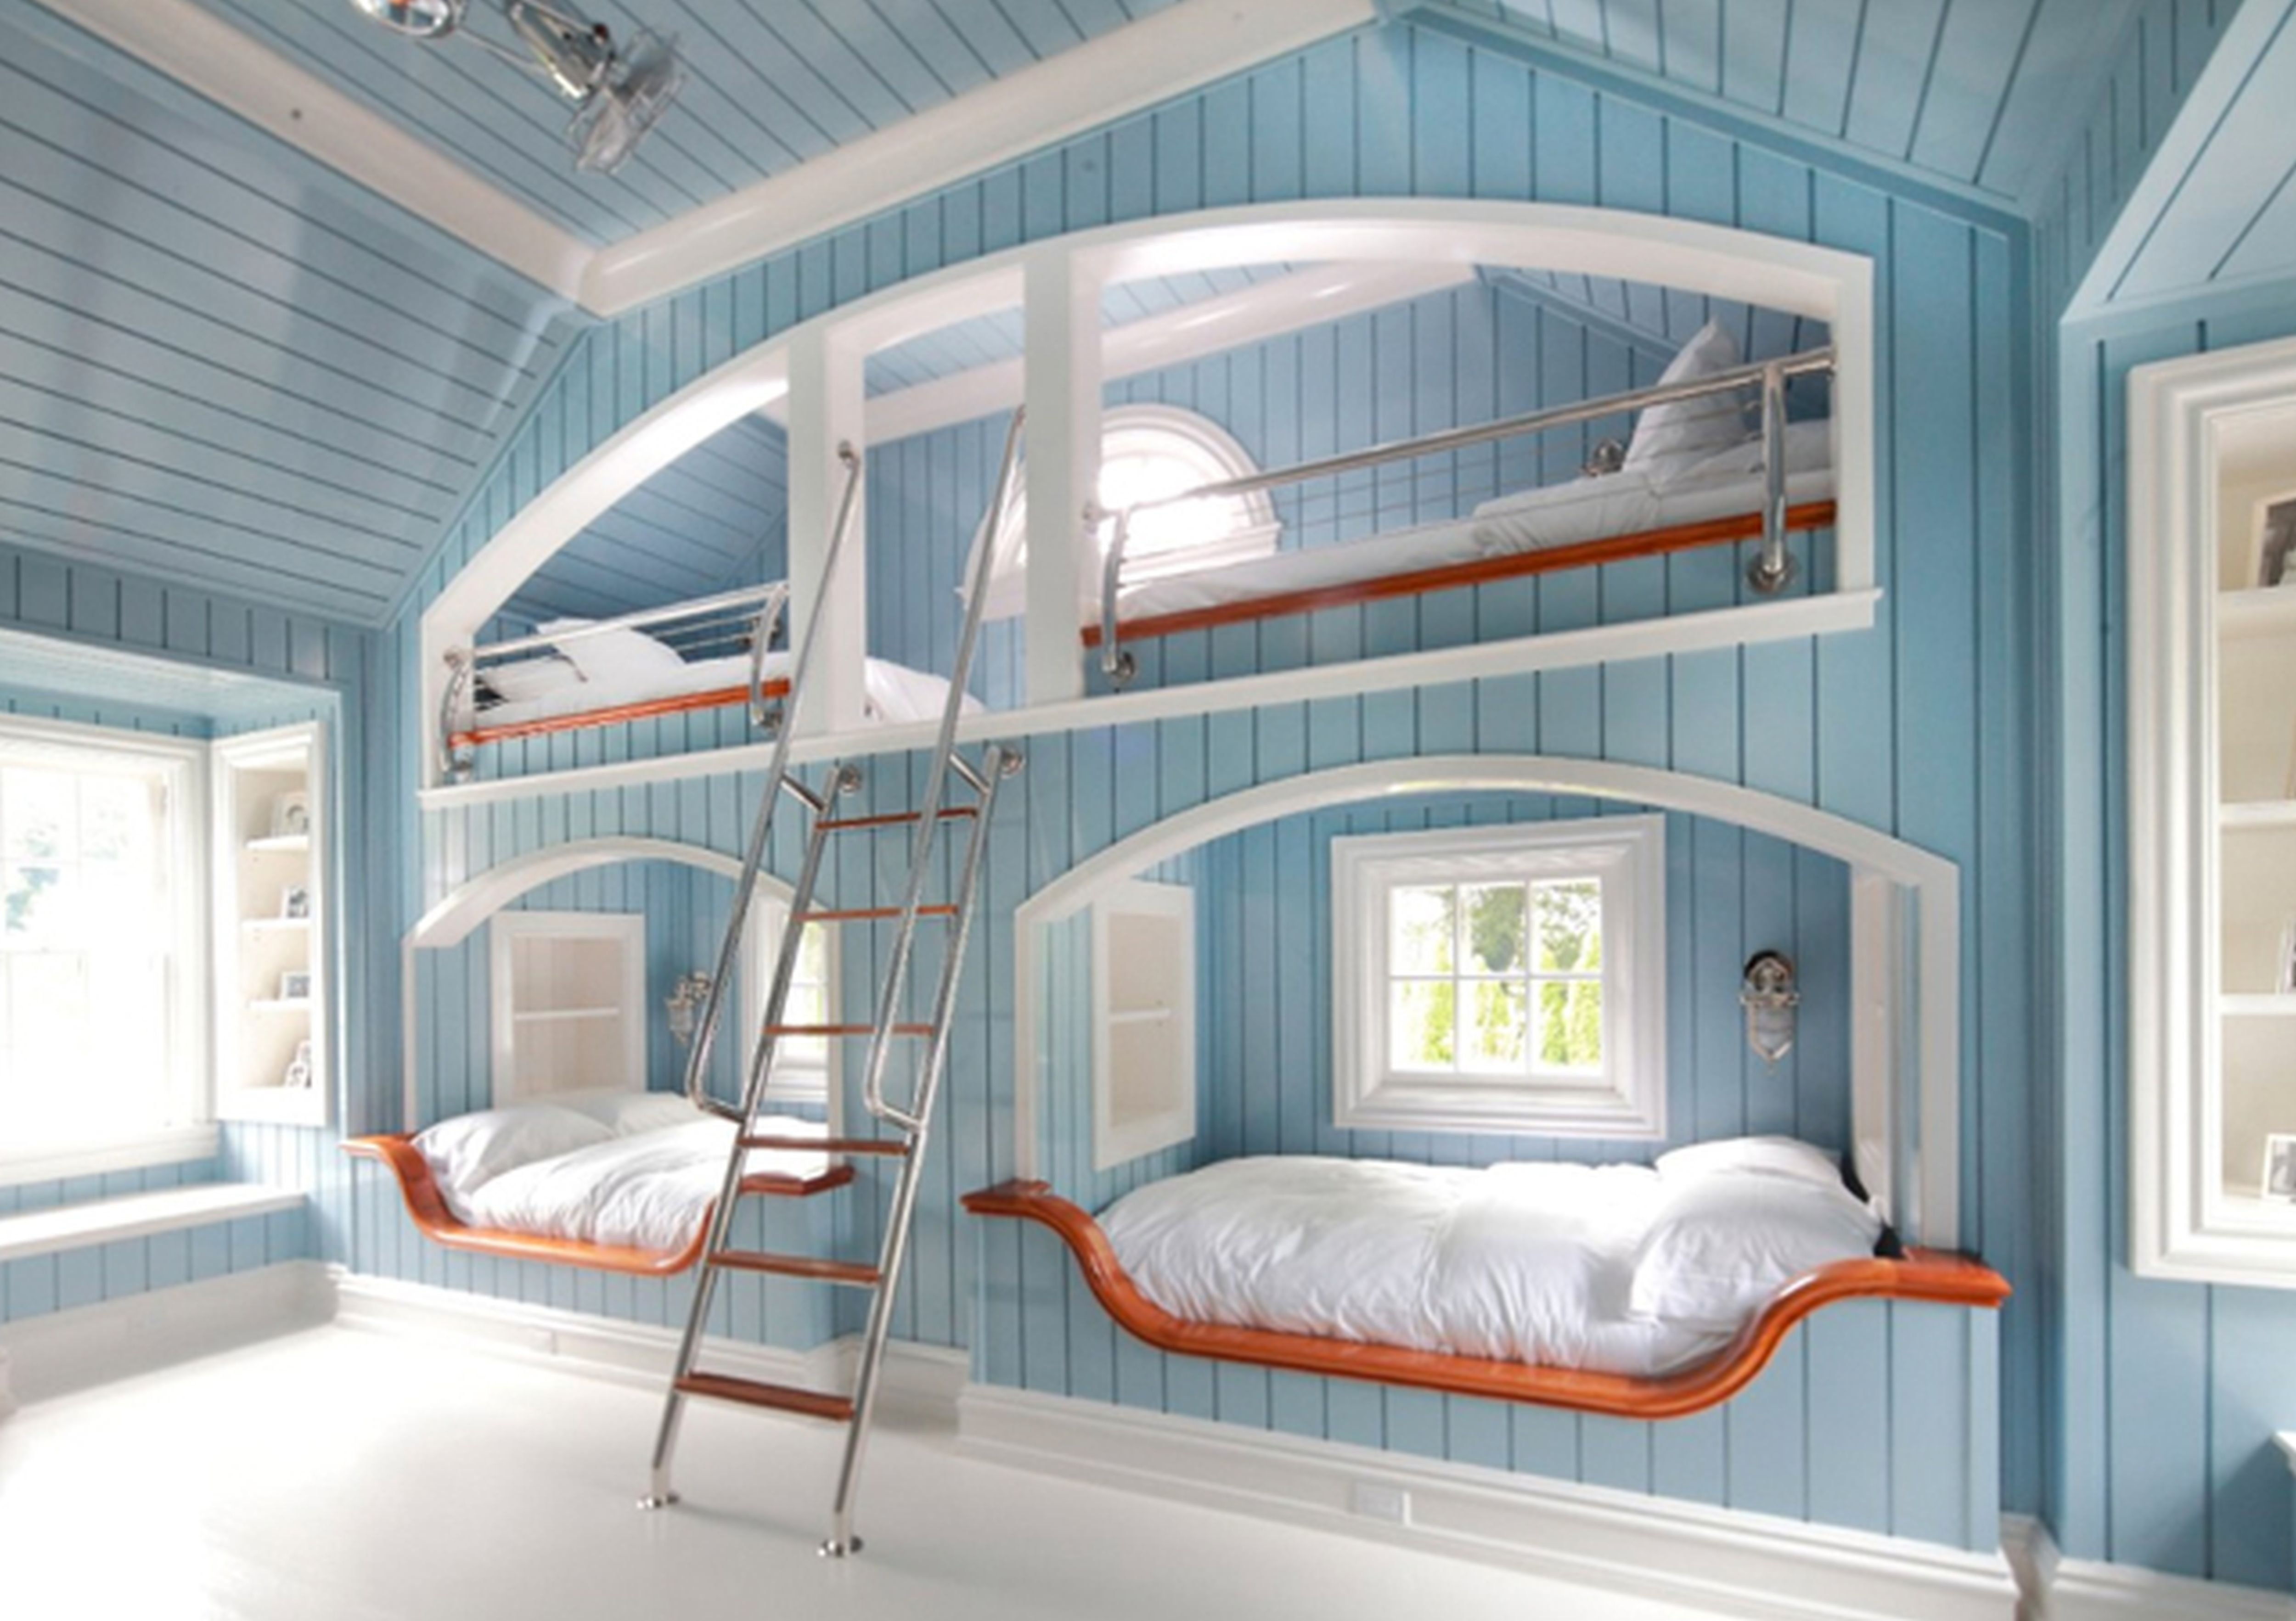 10 Great Cool Room Ideas For Girls 2021